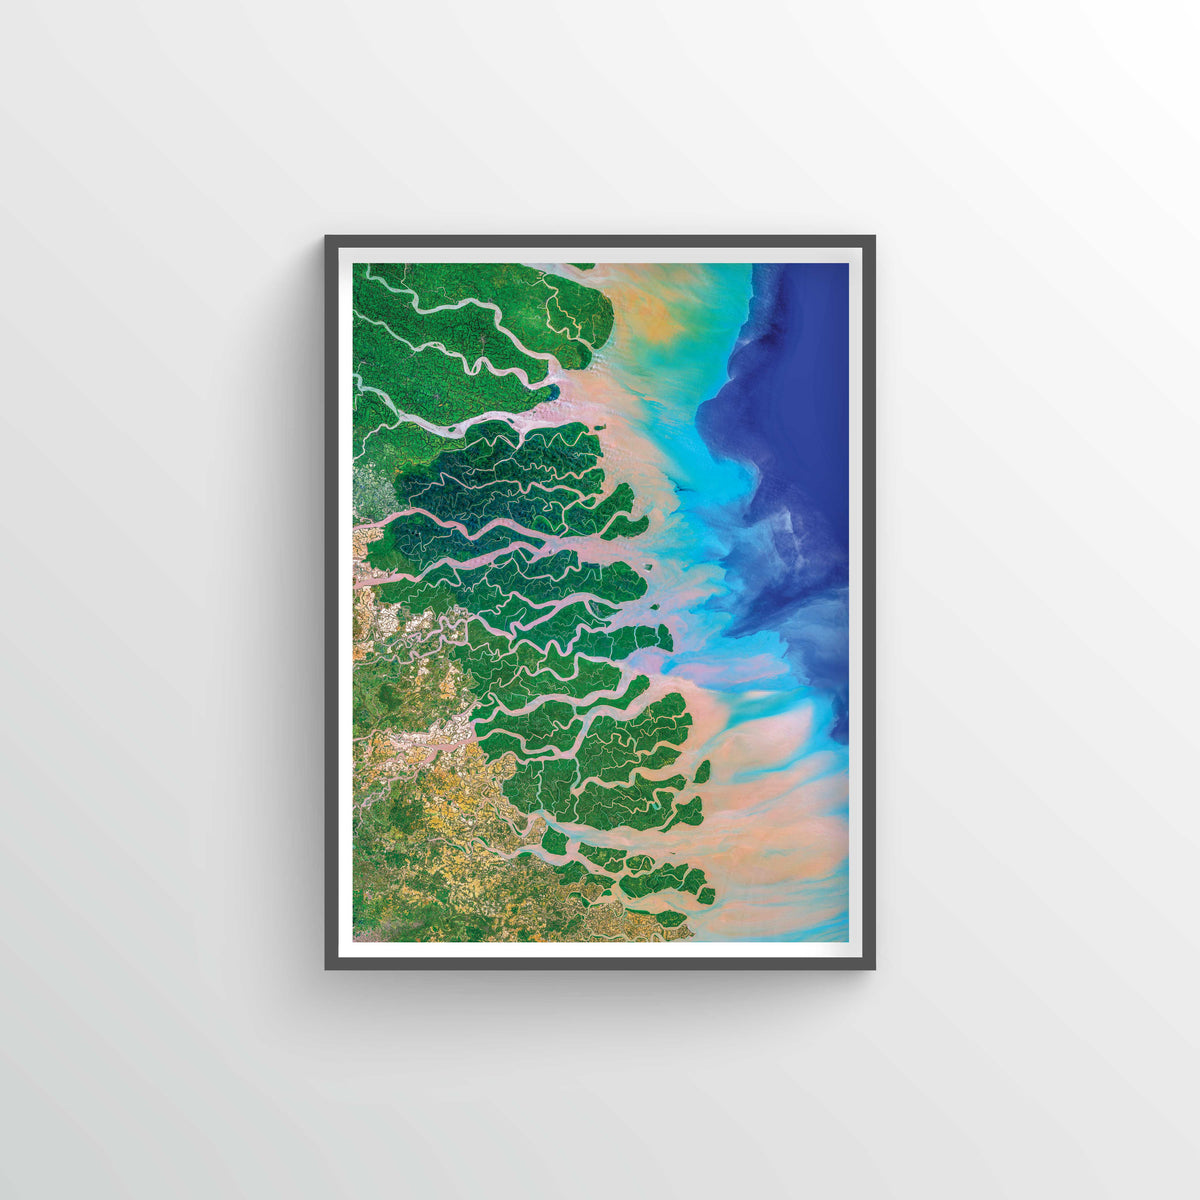 Ganges-Brahmaputra Delta Earth Photography - Art Print - Point Two Design